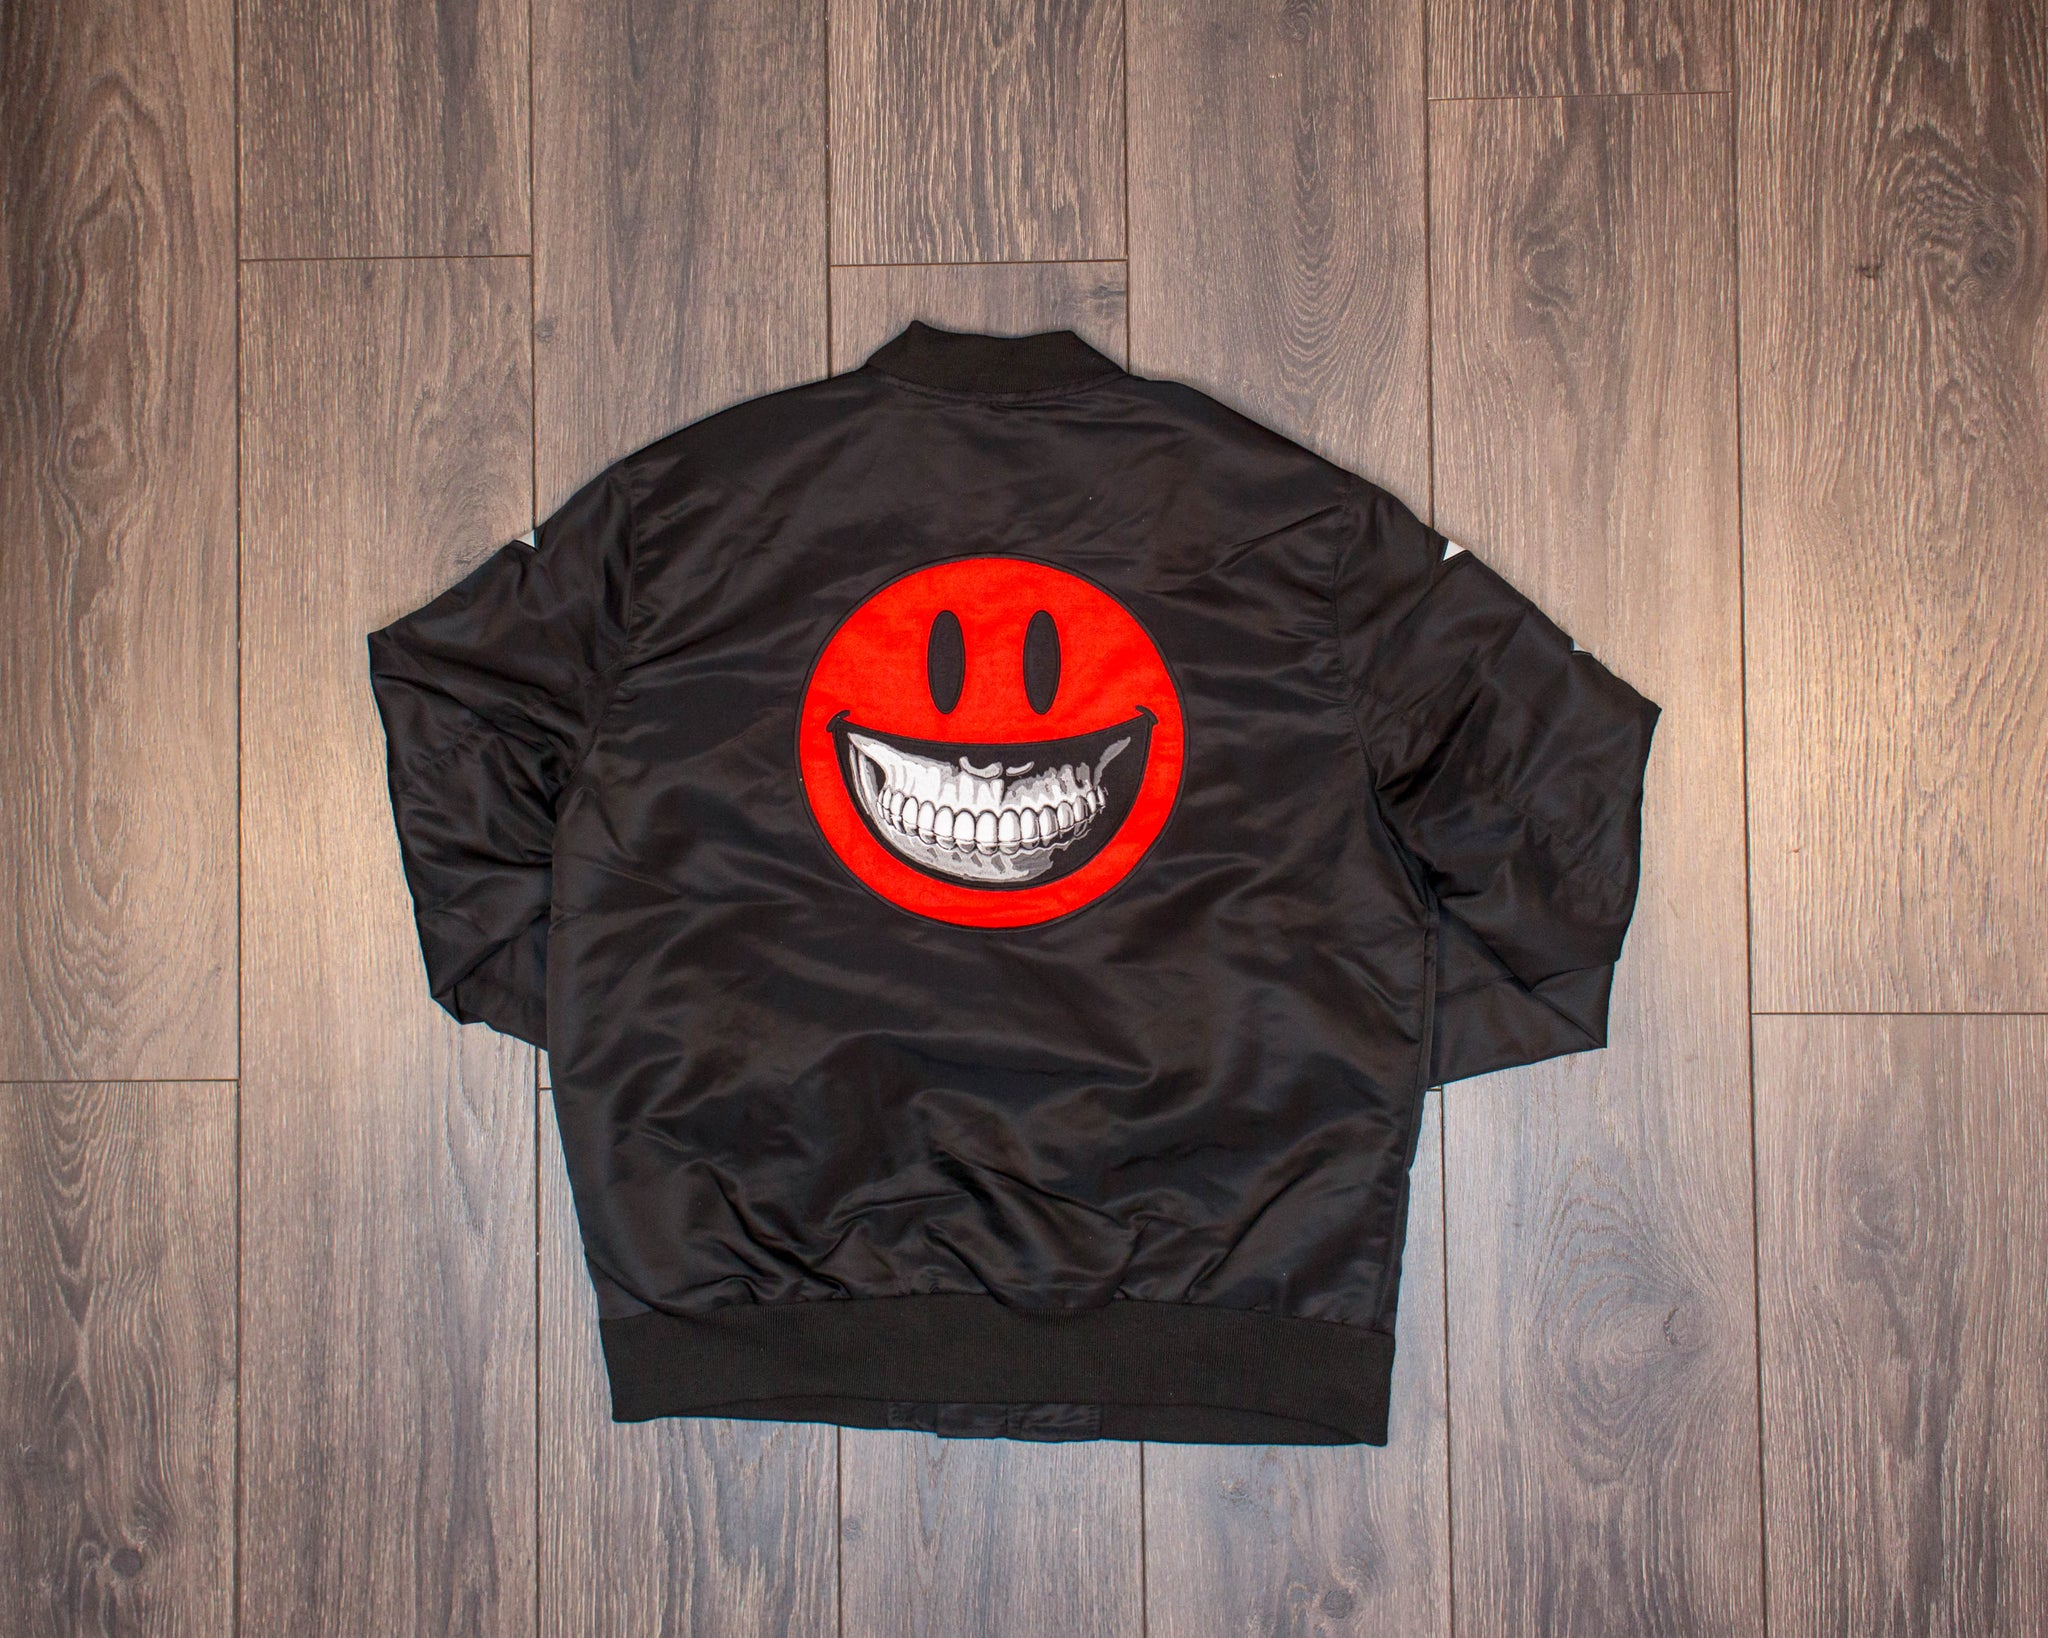 Staple Smile Bomber Jacket